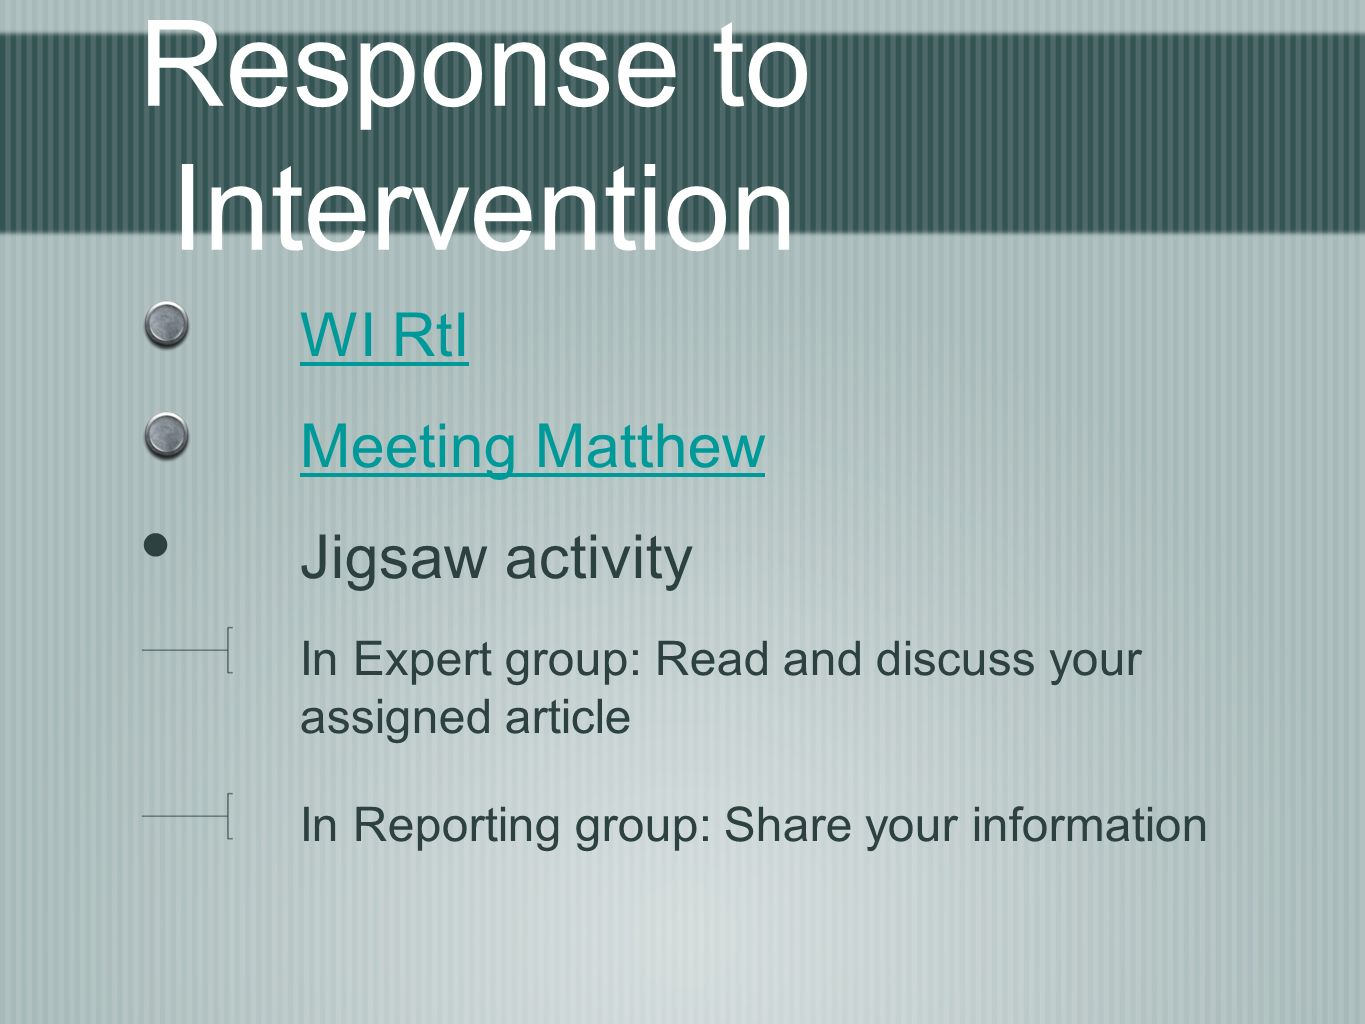 Response to Intervention WI RtI Meeting Matthew Jigsaw activity In Expert group: Read and discuss your assigned article In Reporting group: Share your information